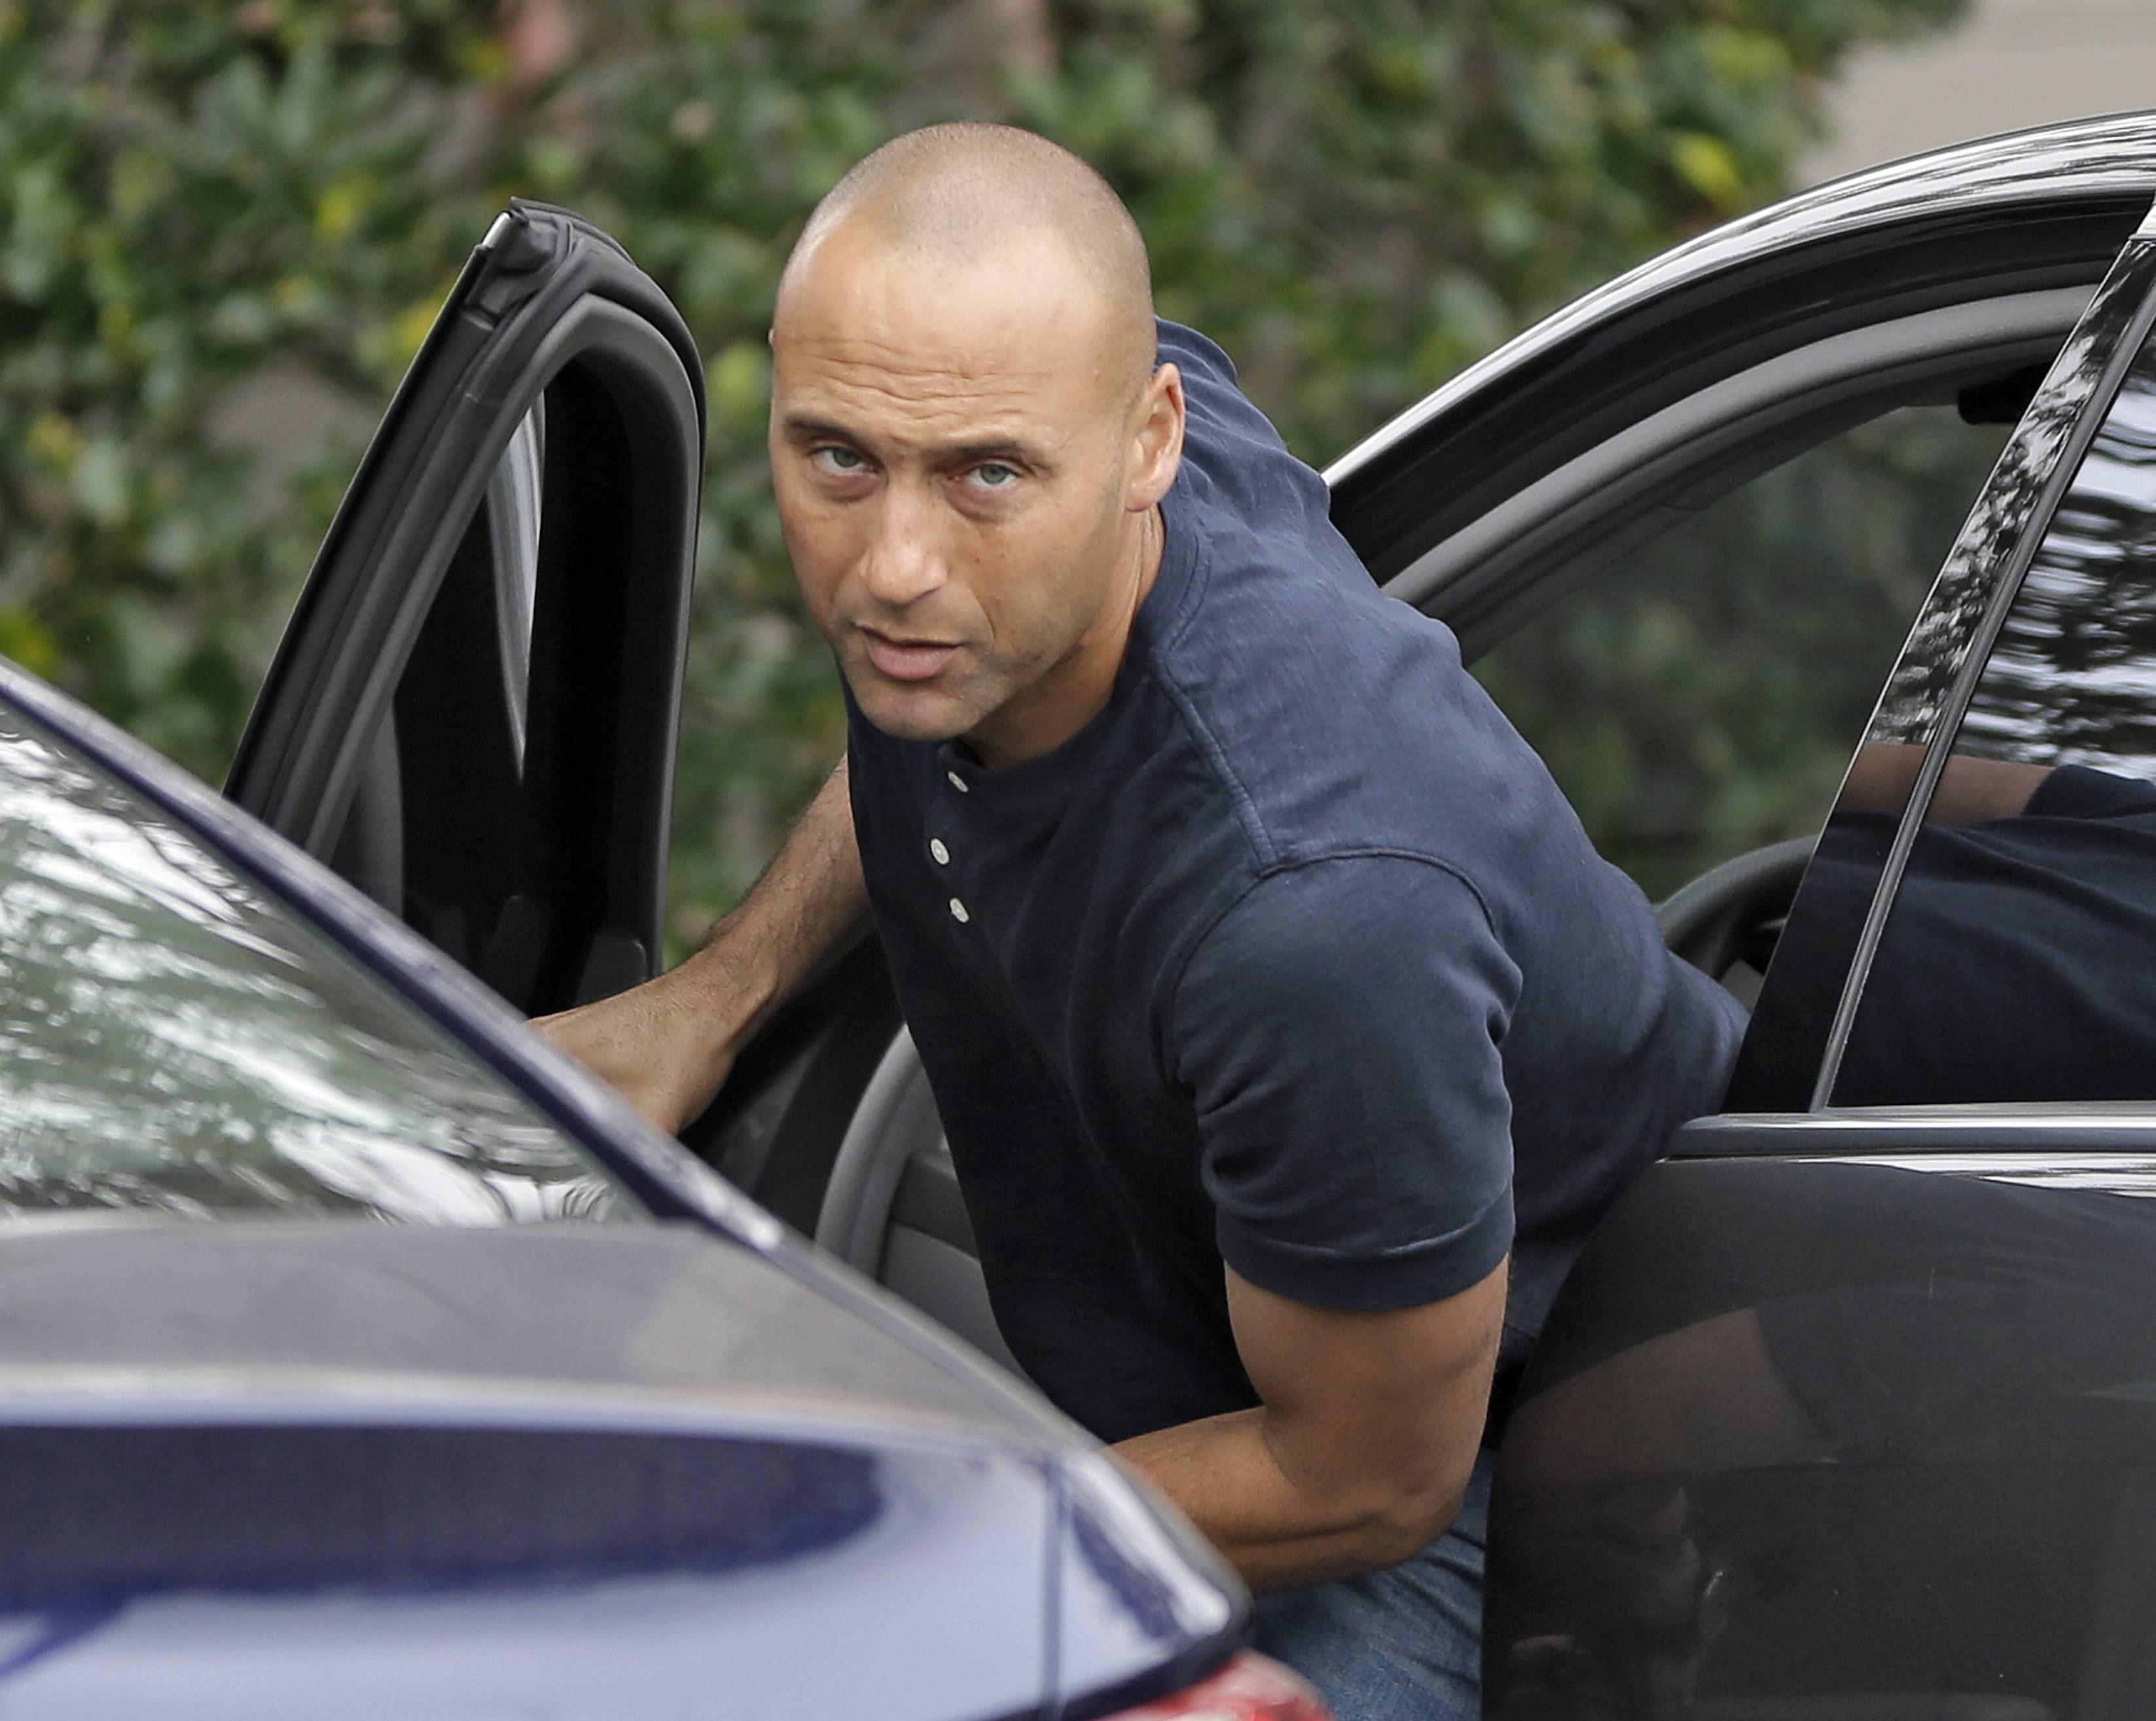 New York Yankees shortstop Derek Jeter arrives for a workout at the Yankees' minor league facility Wednesday in Tampa, Fla. Jeter says he will retire after this season. Jeter posted a long letter on his Facebook account Wednesday saying the 2014 will be his last year playing professional baseball.